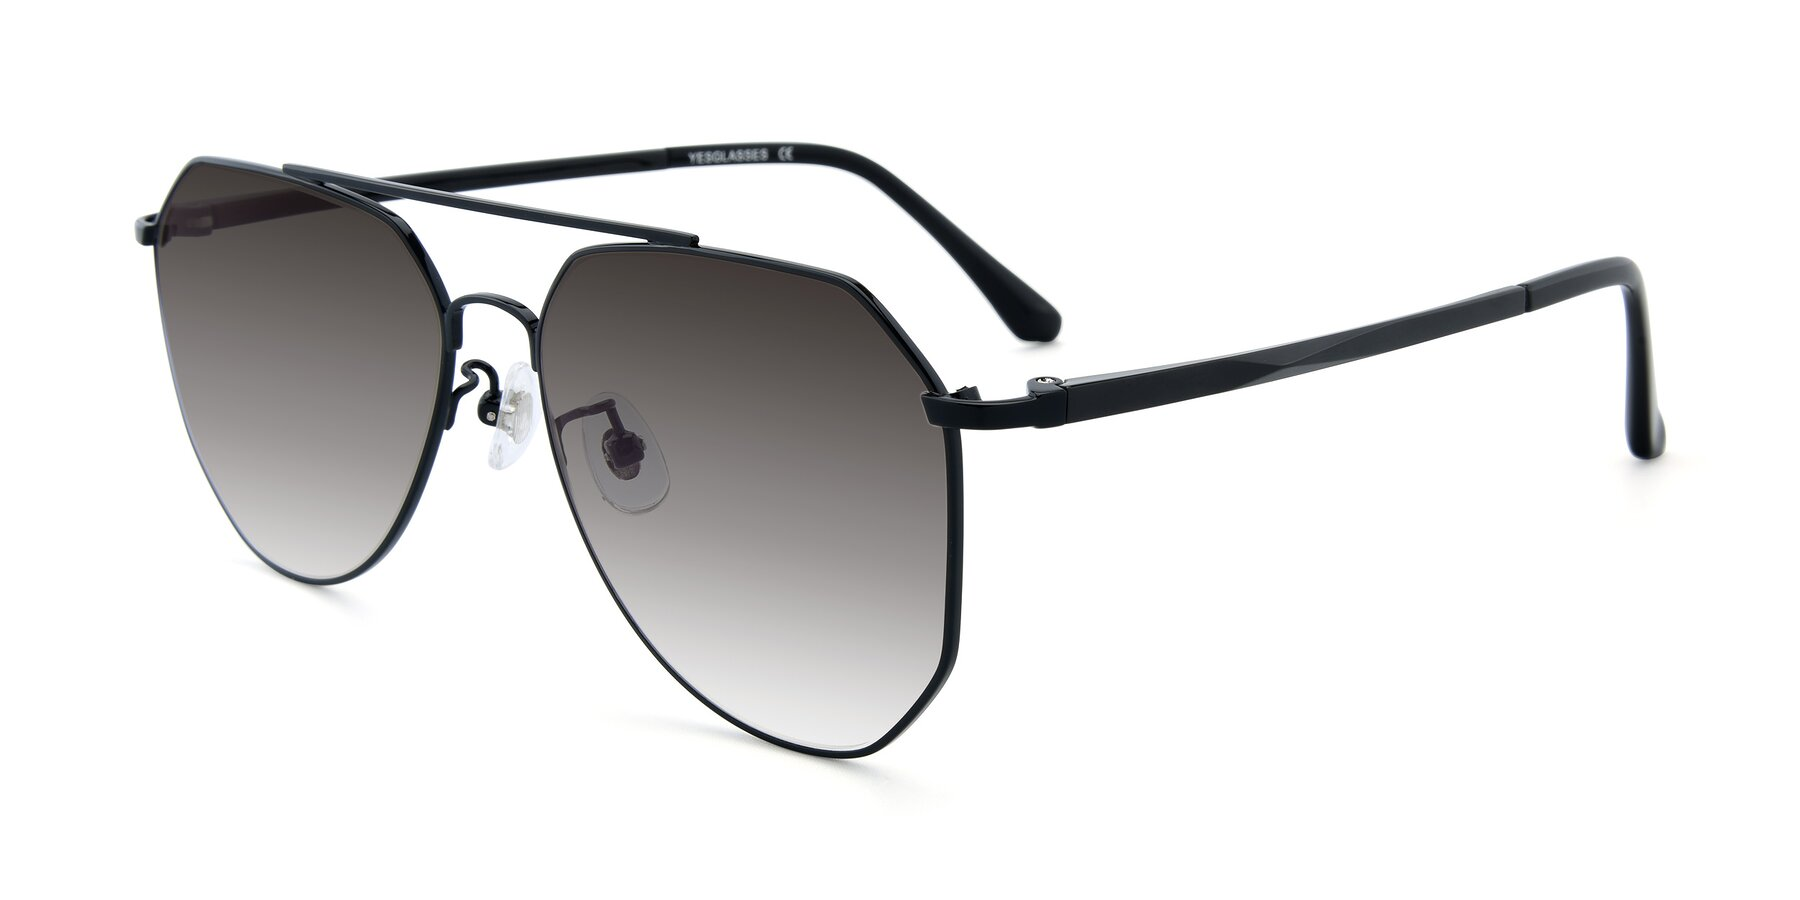 Angle of XC-8040 in Black with Gray Gradient Lenses